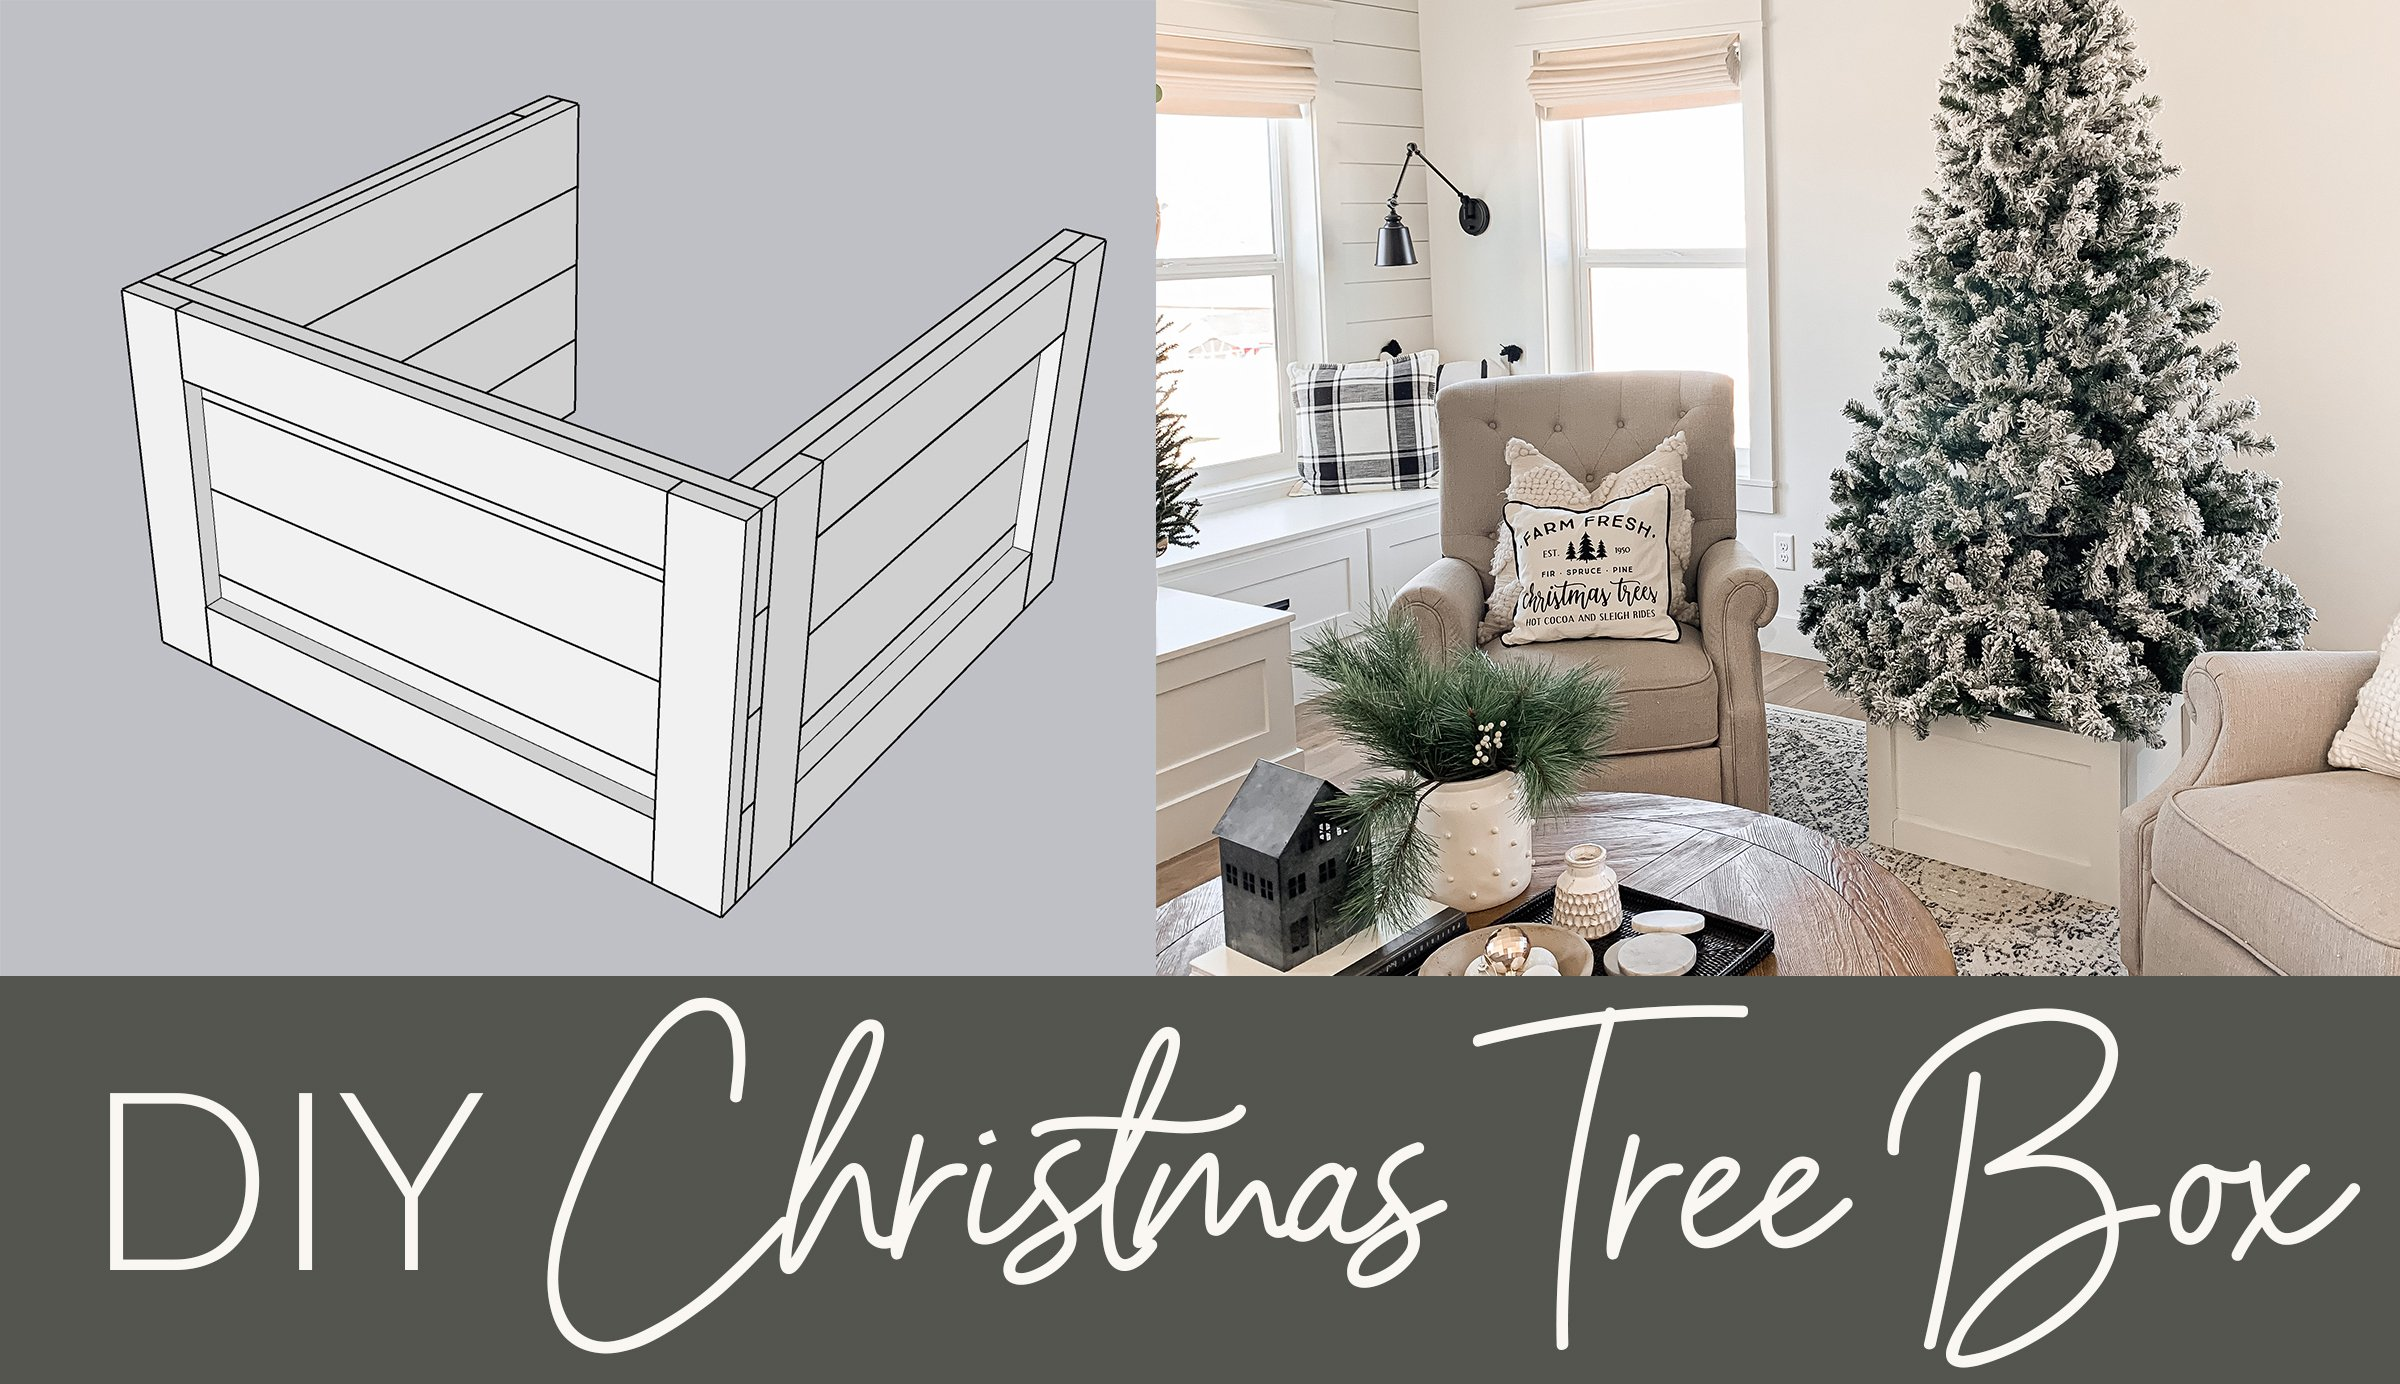 How to build Christmas Tree box